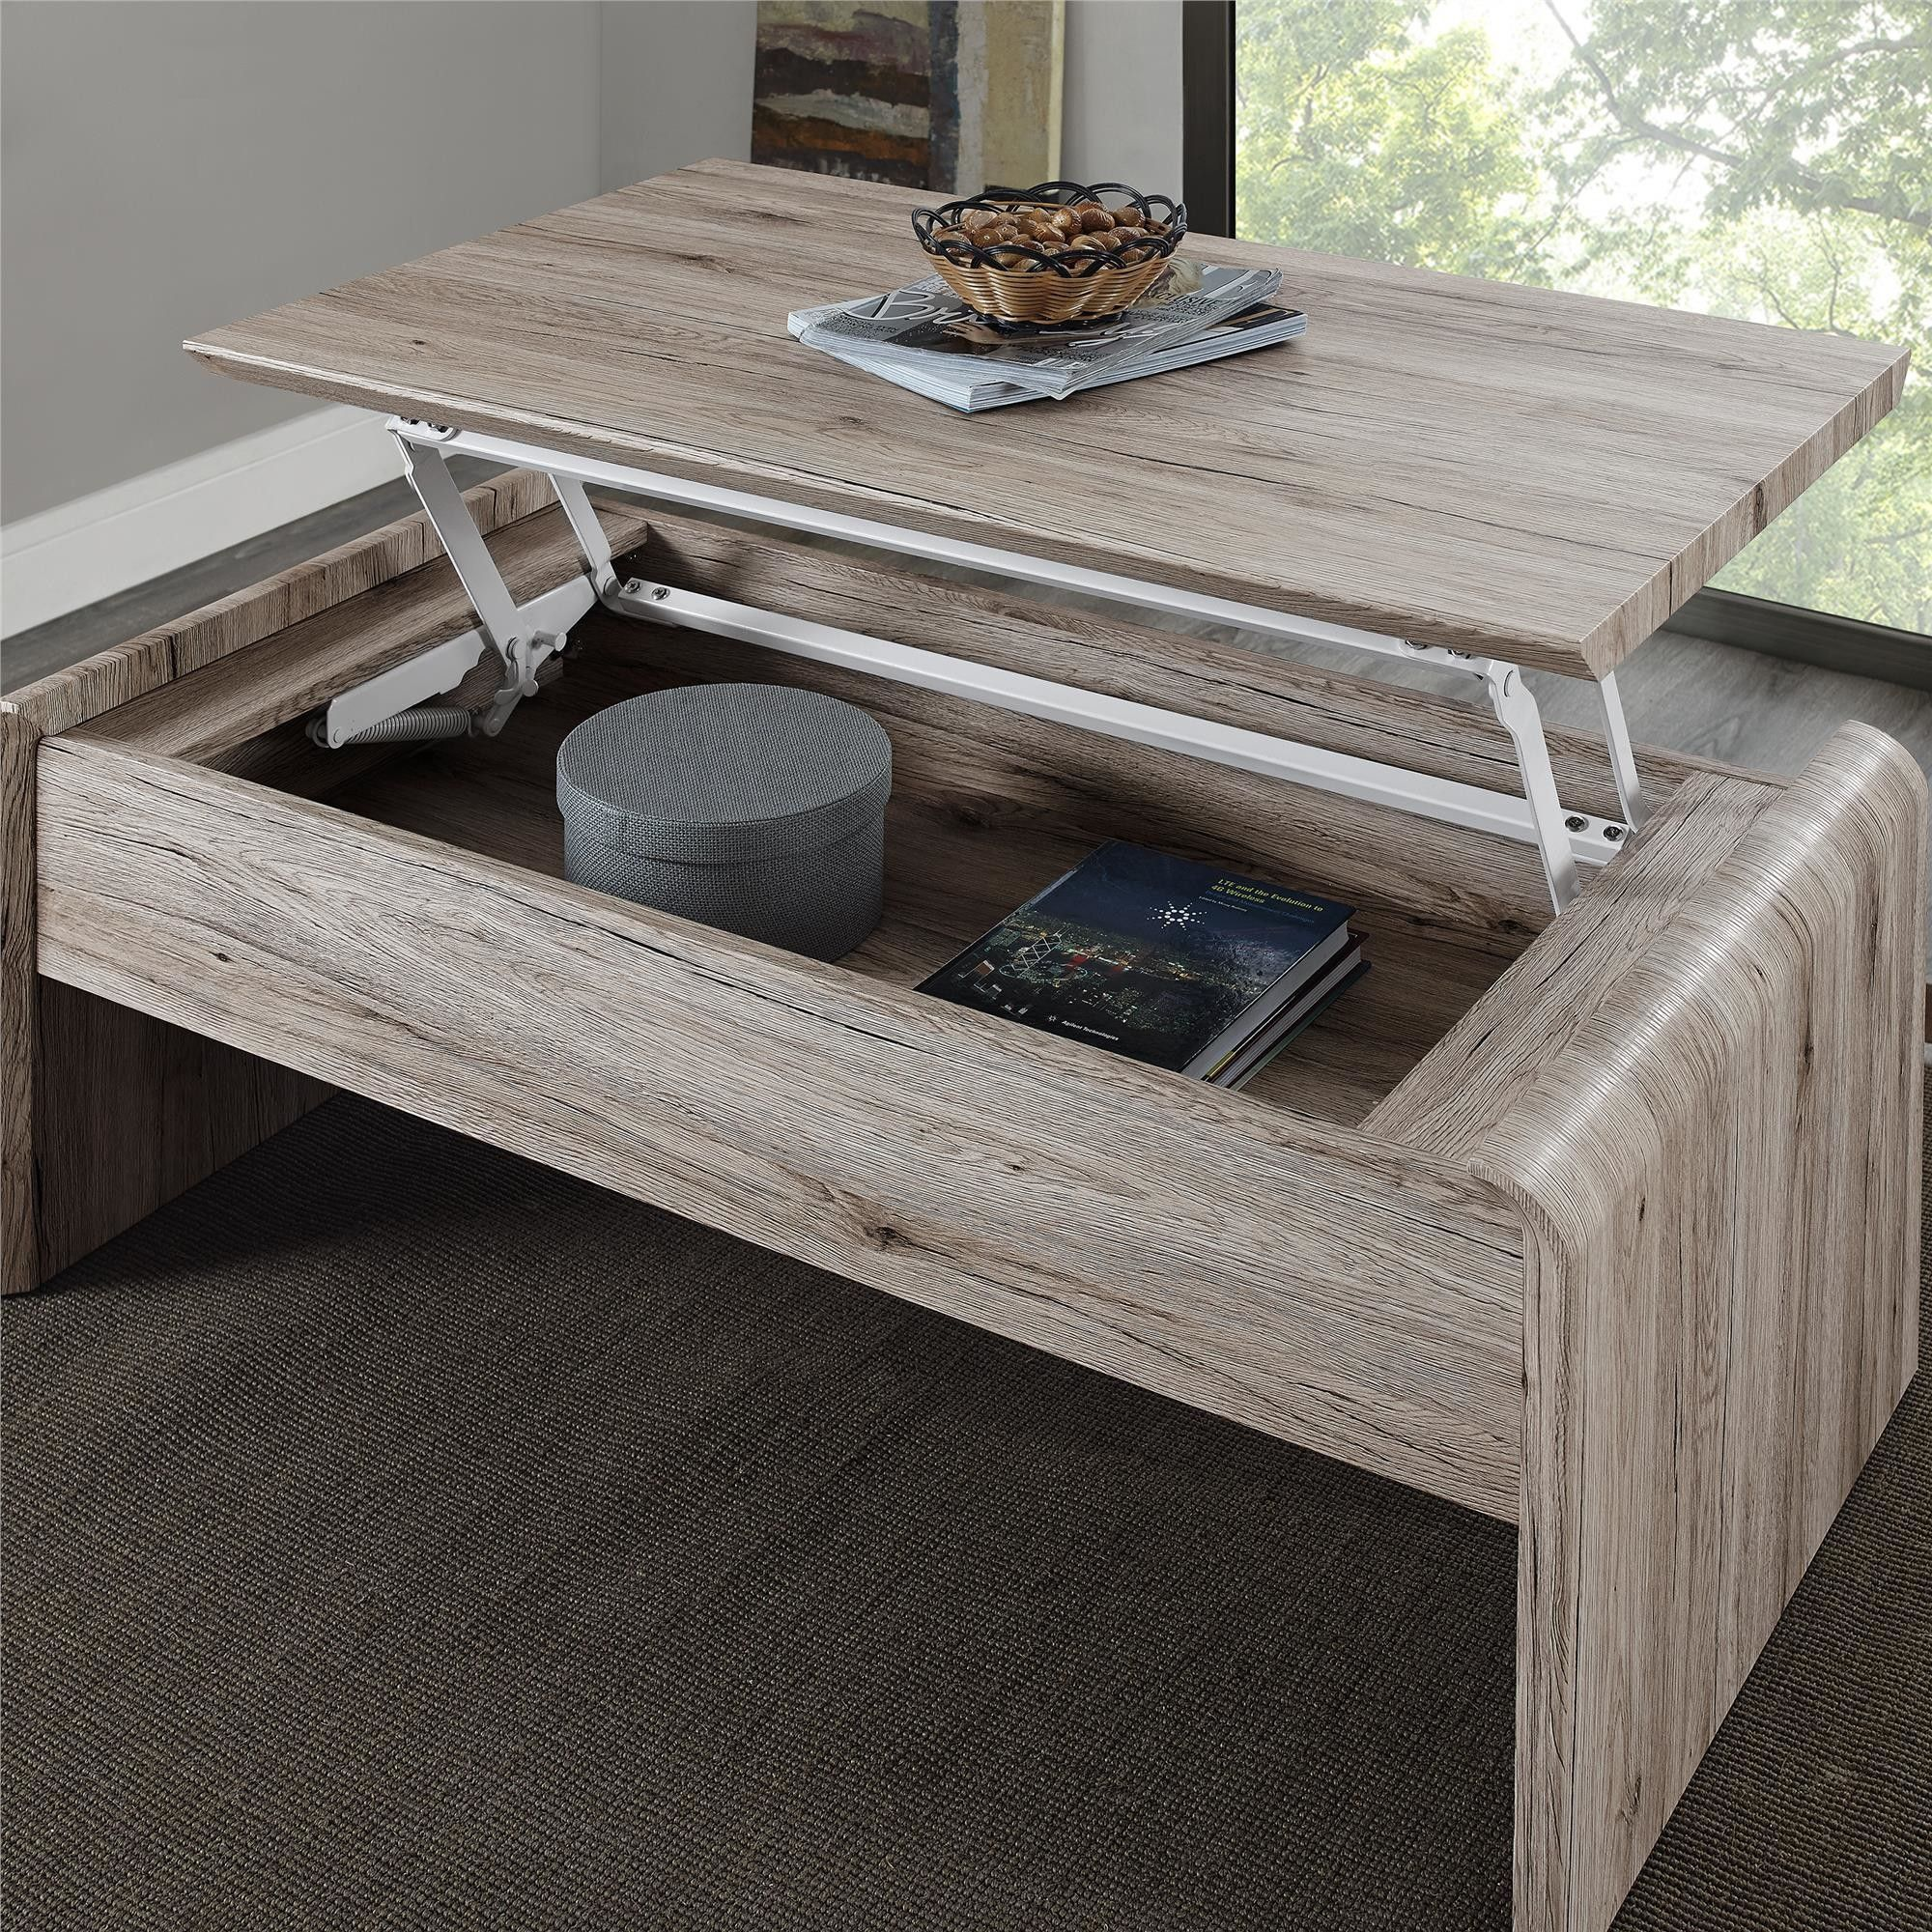 Extended Tables features: -metal hinges lock into place when table top is extended